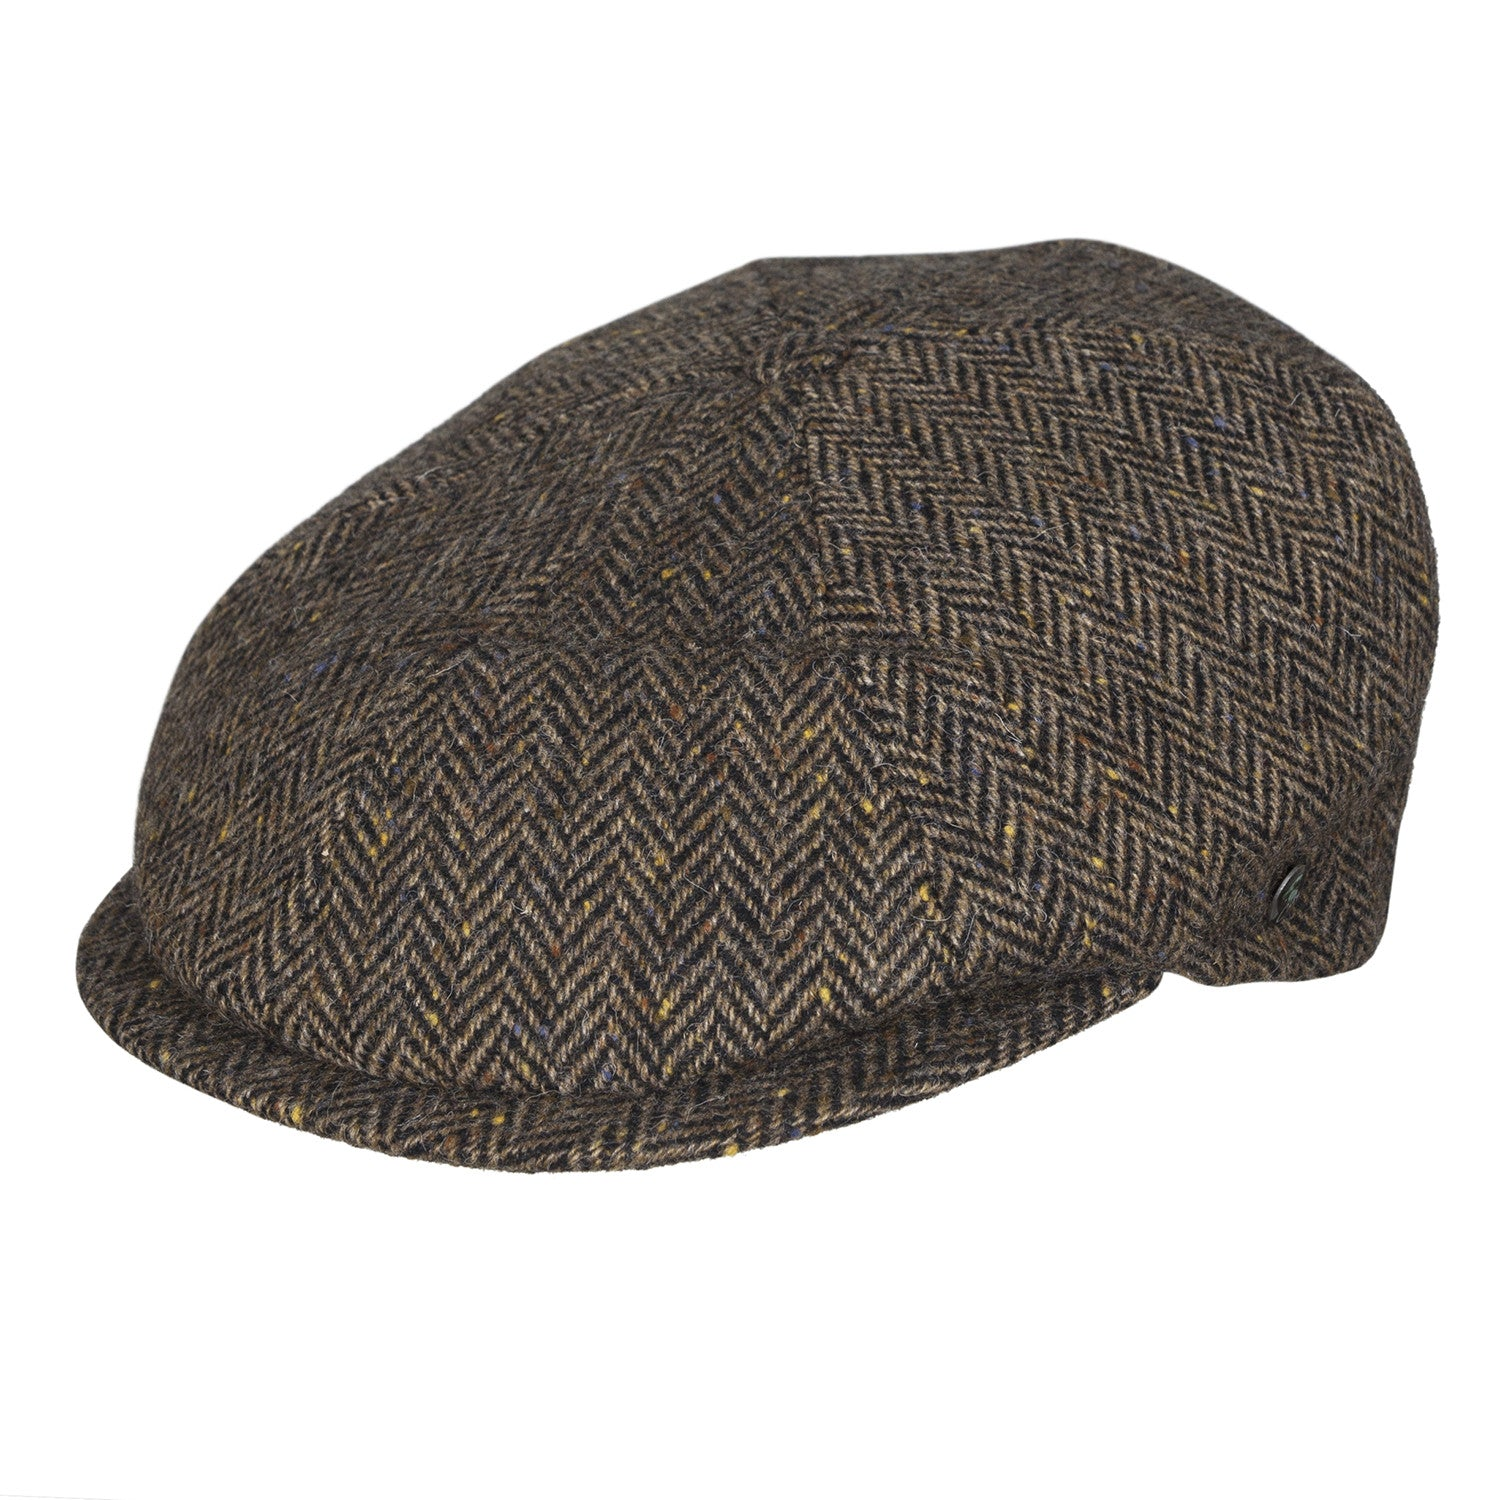 d9b8a470 Donegal Tweed newsboy cap | Brown Herringbone | buy now at The Cashmere  Choice London ...